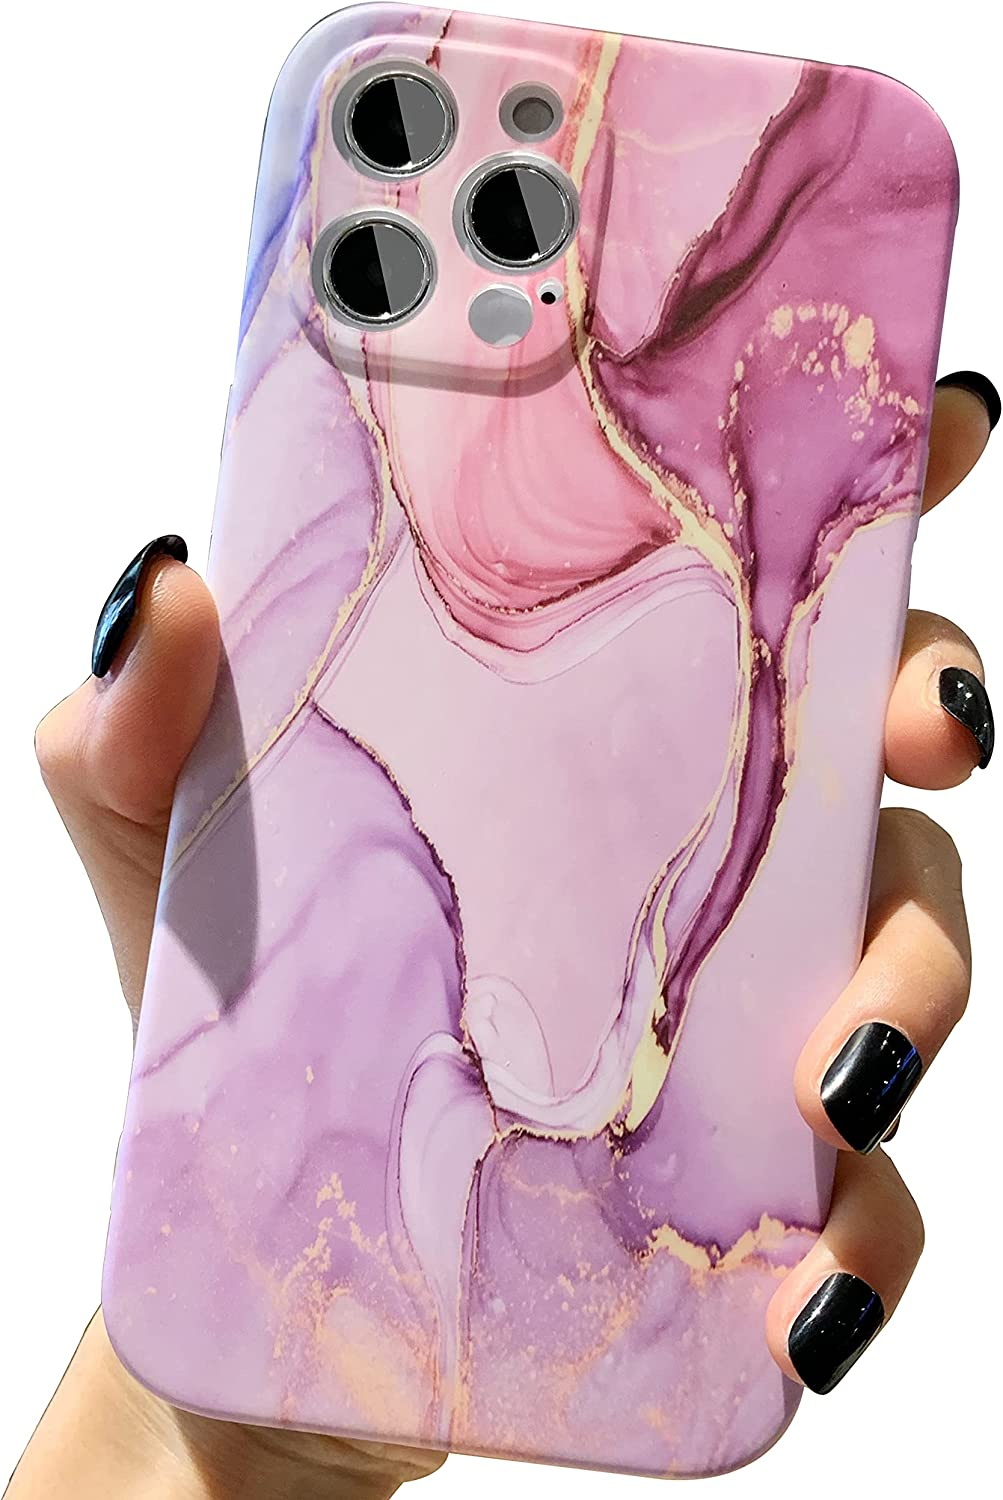 Marble Design Case Compatible with iPhone 12 Pro Max for Women Girls, with Unique Full Camera Lens Protection Slim Matte Case Shockproof Soft Flexible Protective Cover for 12 Pro Max 6.7 inch 5G